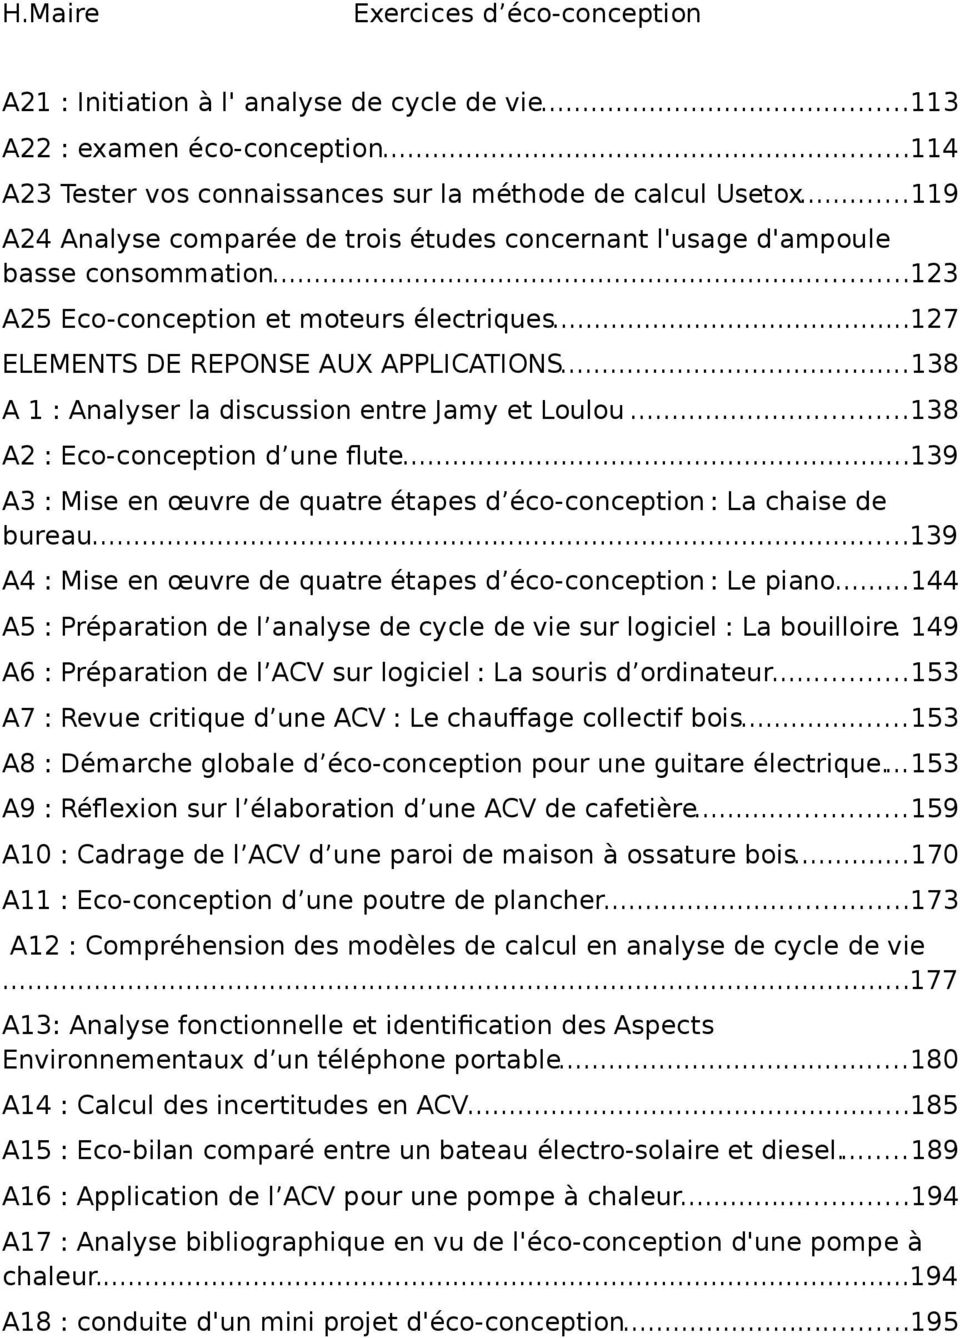 ..138 A 1 : Analyser la discussion entre Jamy et Loulou...138 A2 : Eco-conception d une flute...139 A3 : Mise en œuvre de quatre étapes d éco-conception : La chaise de bureau.